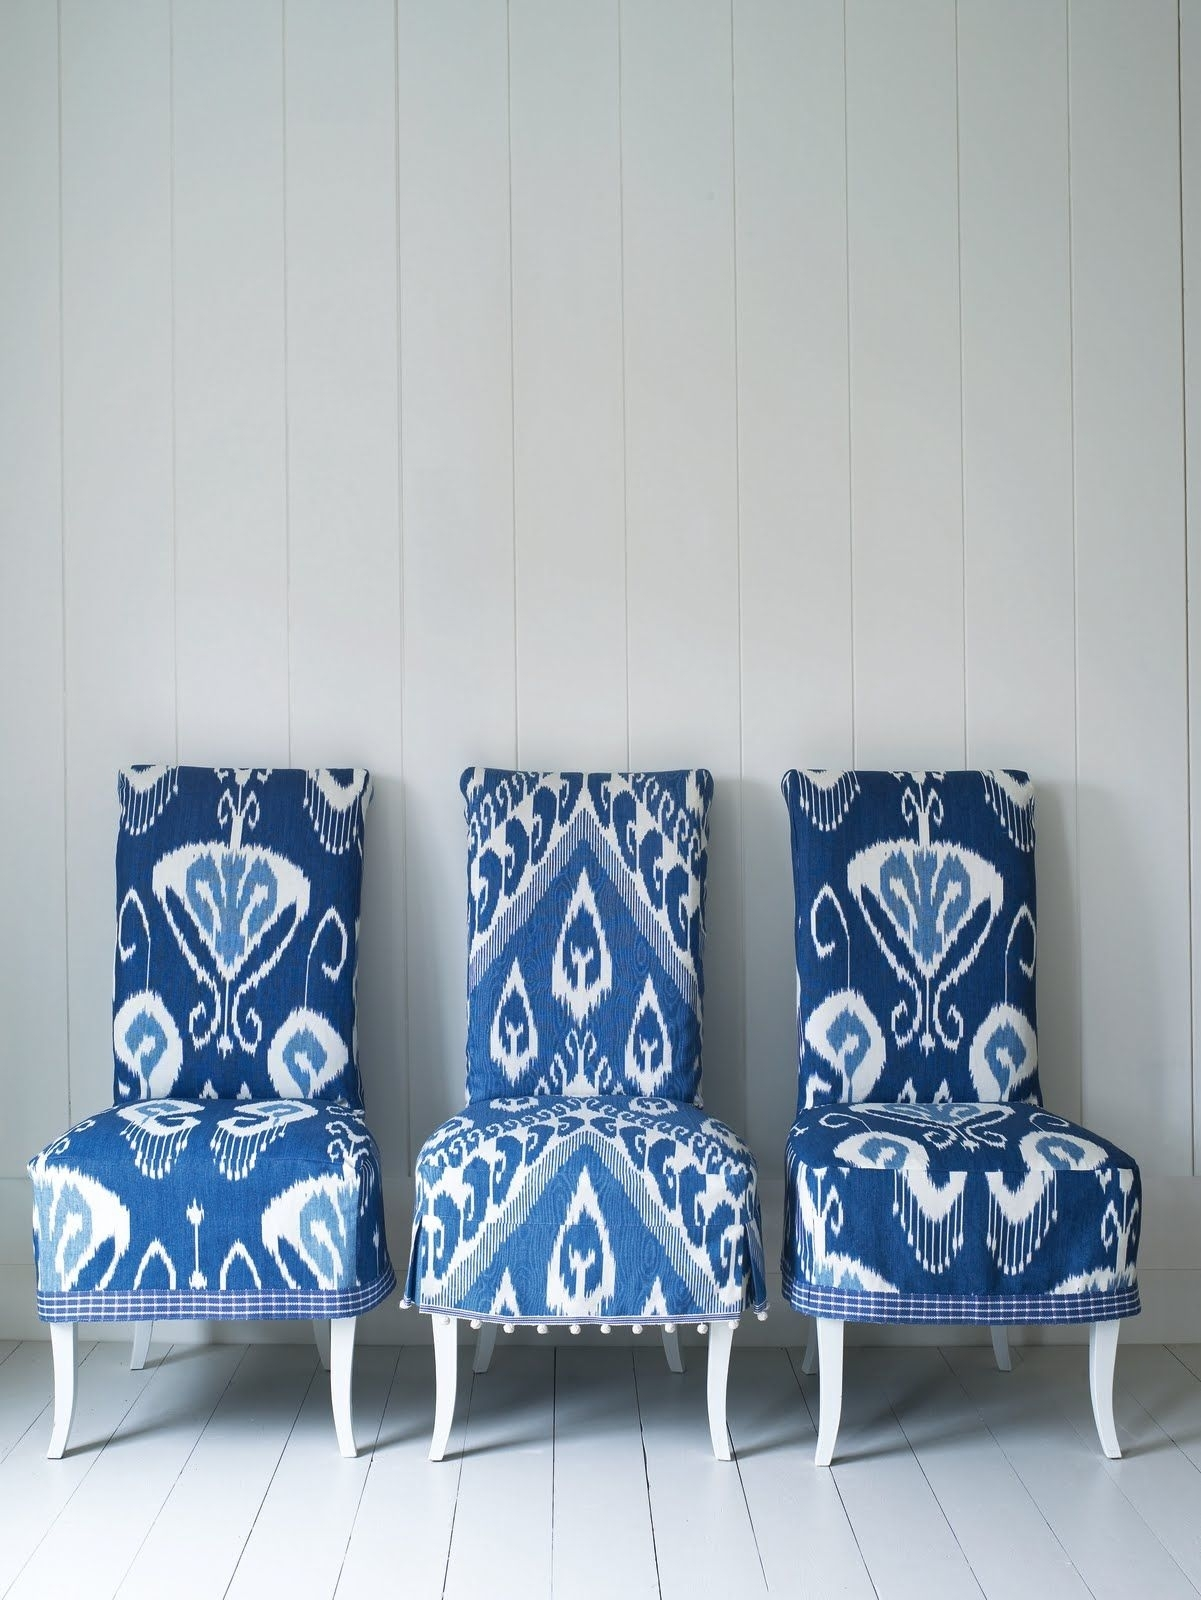 Newest Dining Chairs With Blue Loose Seat Within Blue And White Ikat Chairs, Via Interiors Nut (View 14 of 20)